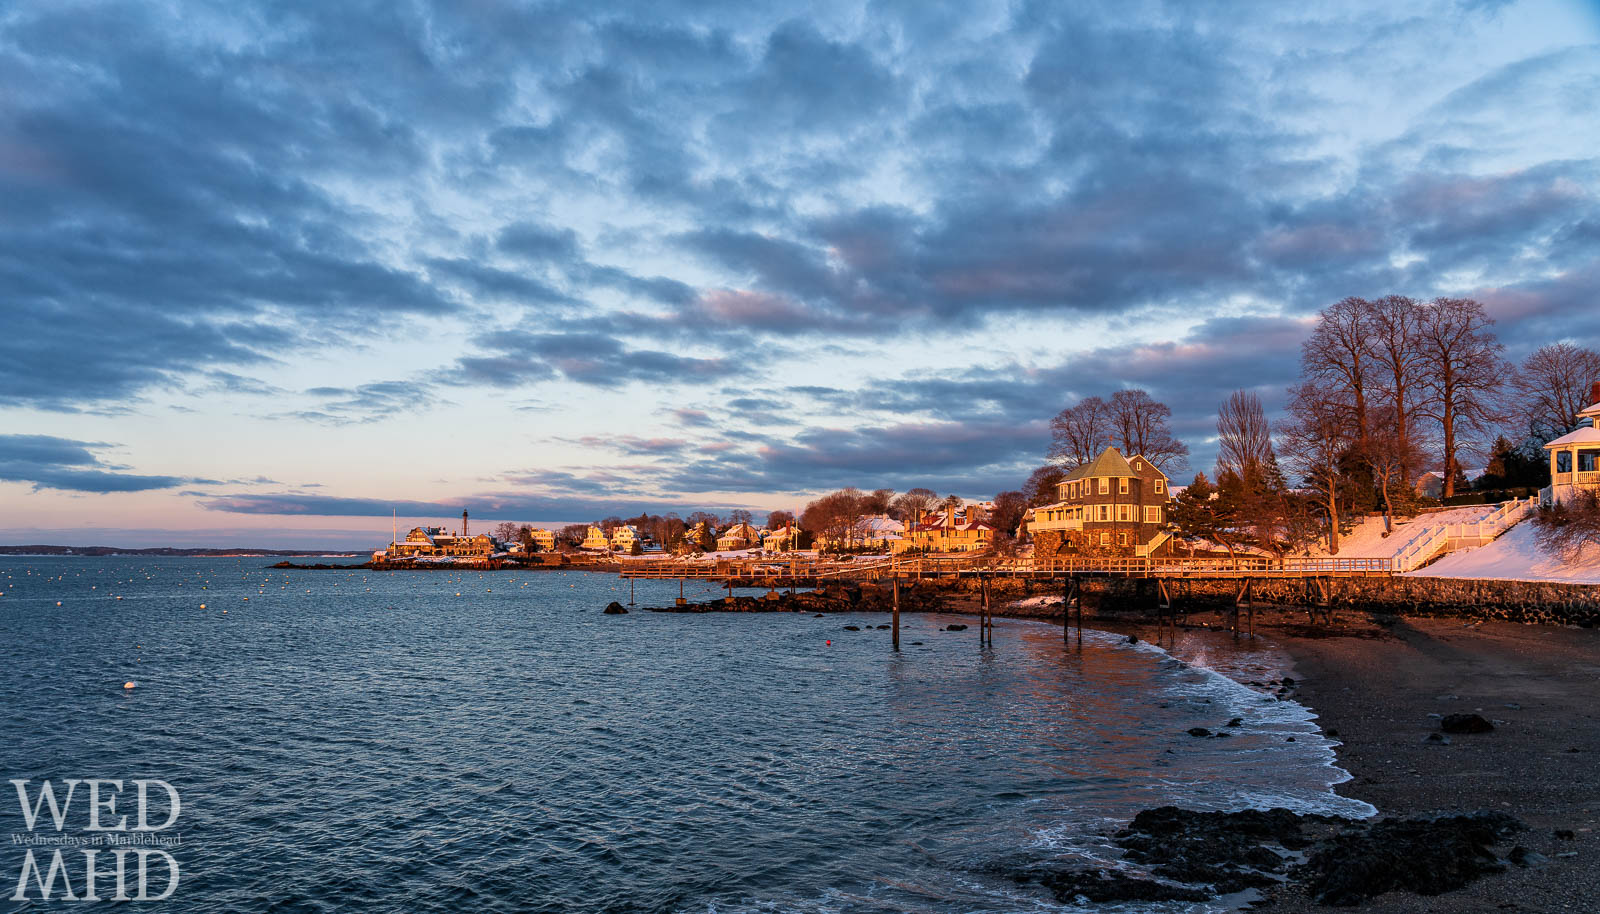 Stately homes and the Corinthian Yacht Club are glowing on the neck as the sun dips in the sky on a winter evening in Marblehead